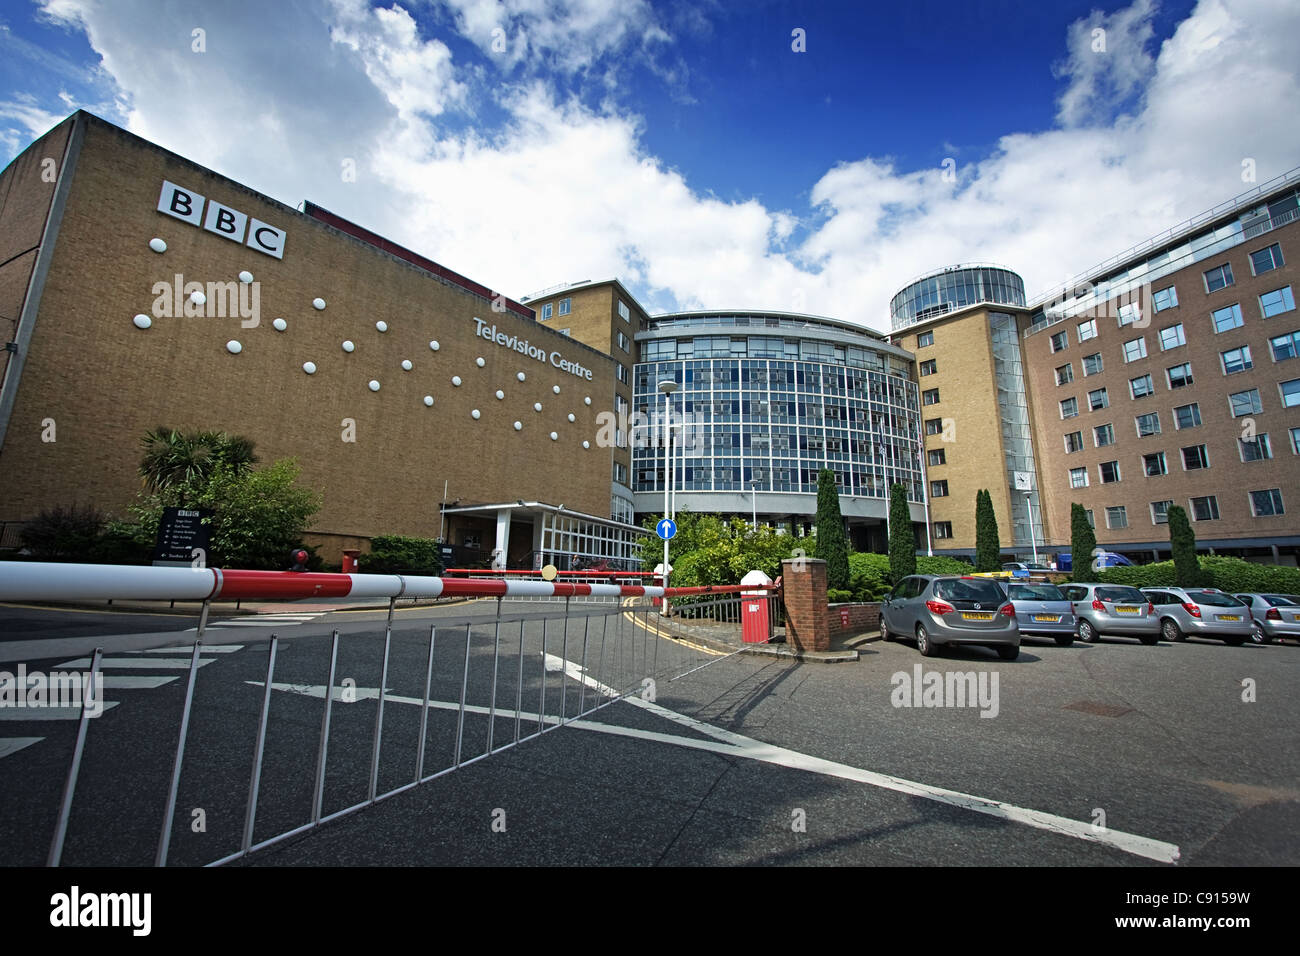 BBC Television Centre Headquarters at White City in West London - Stock Image